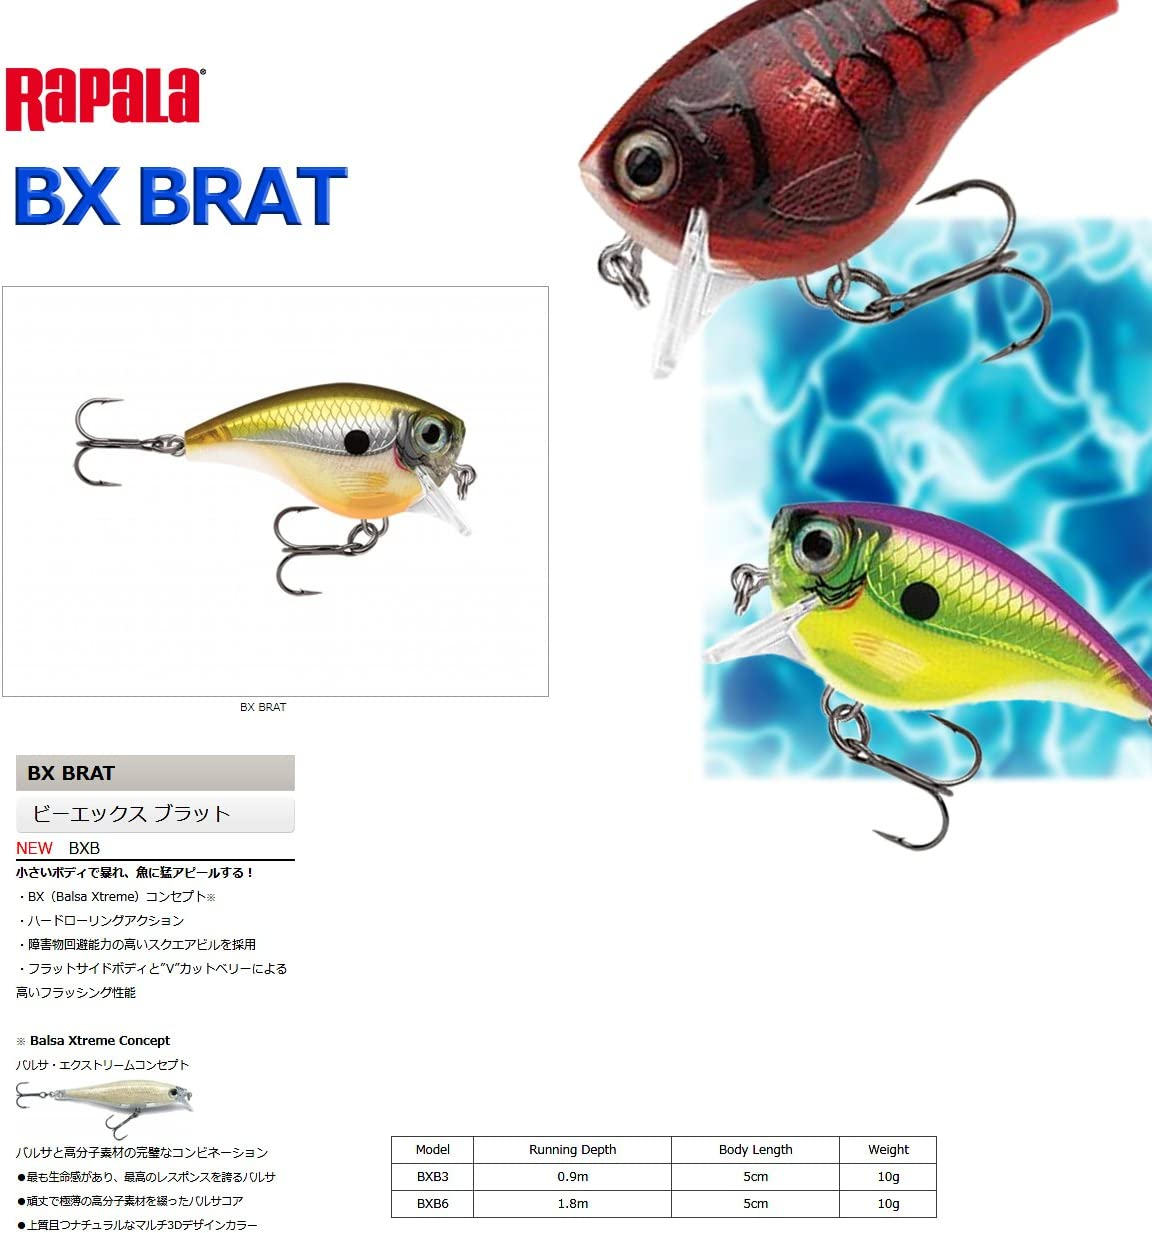 "Rapala BXB06ROC Balsa Xtreme Brat Hard Bait Lure, Freshwater, Size 06, 2"" Length, 6' Depth, 3/8 oz, Rock Solid, Package of 1"